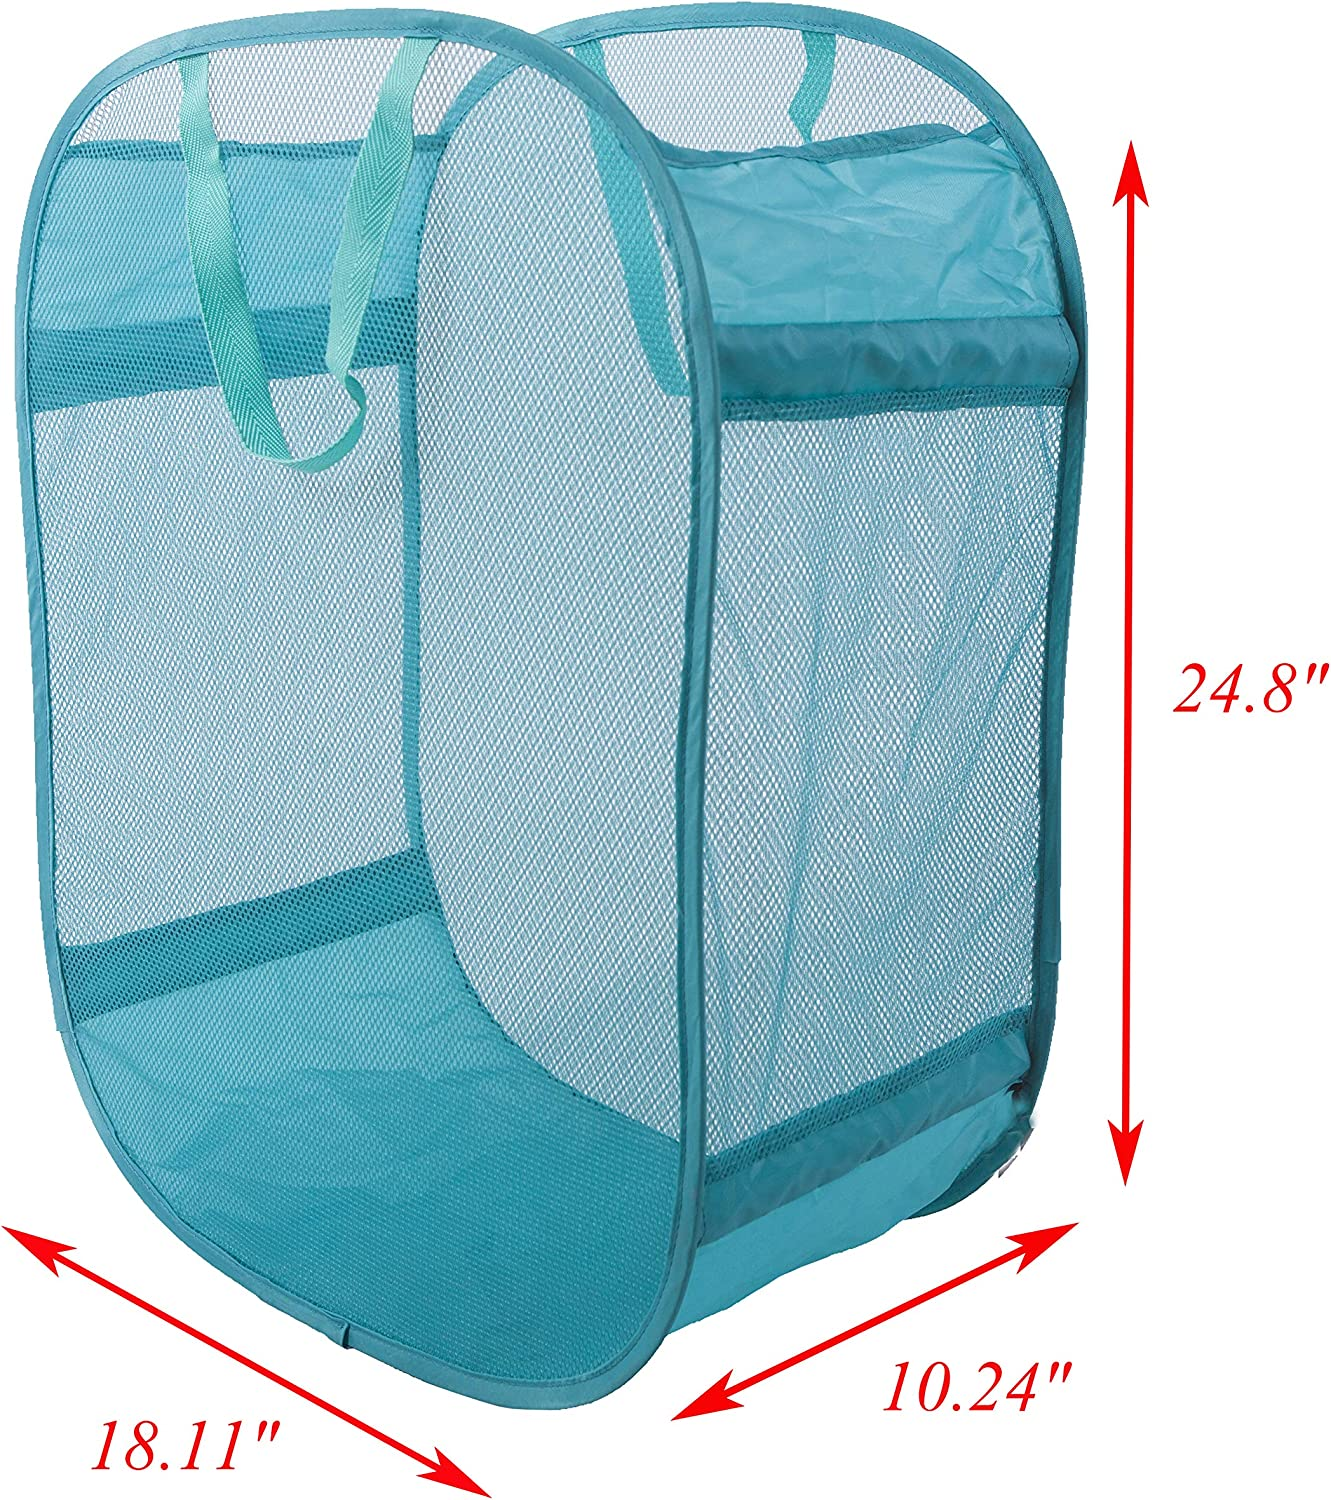 Amelitory Mesh Pop-up Laundry Hamper Easy Foldable Laundry Baskets with Two Durable Handles for Home,Dorm,Travelling Storage Lake Blue